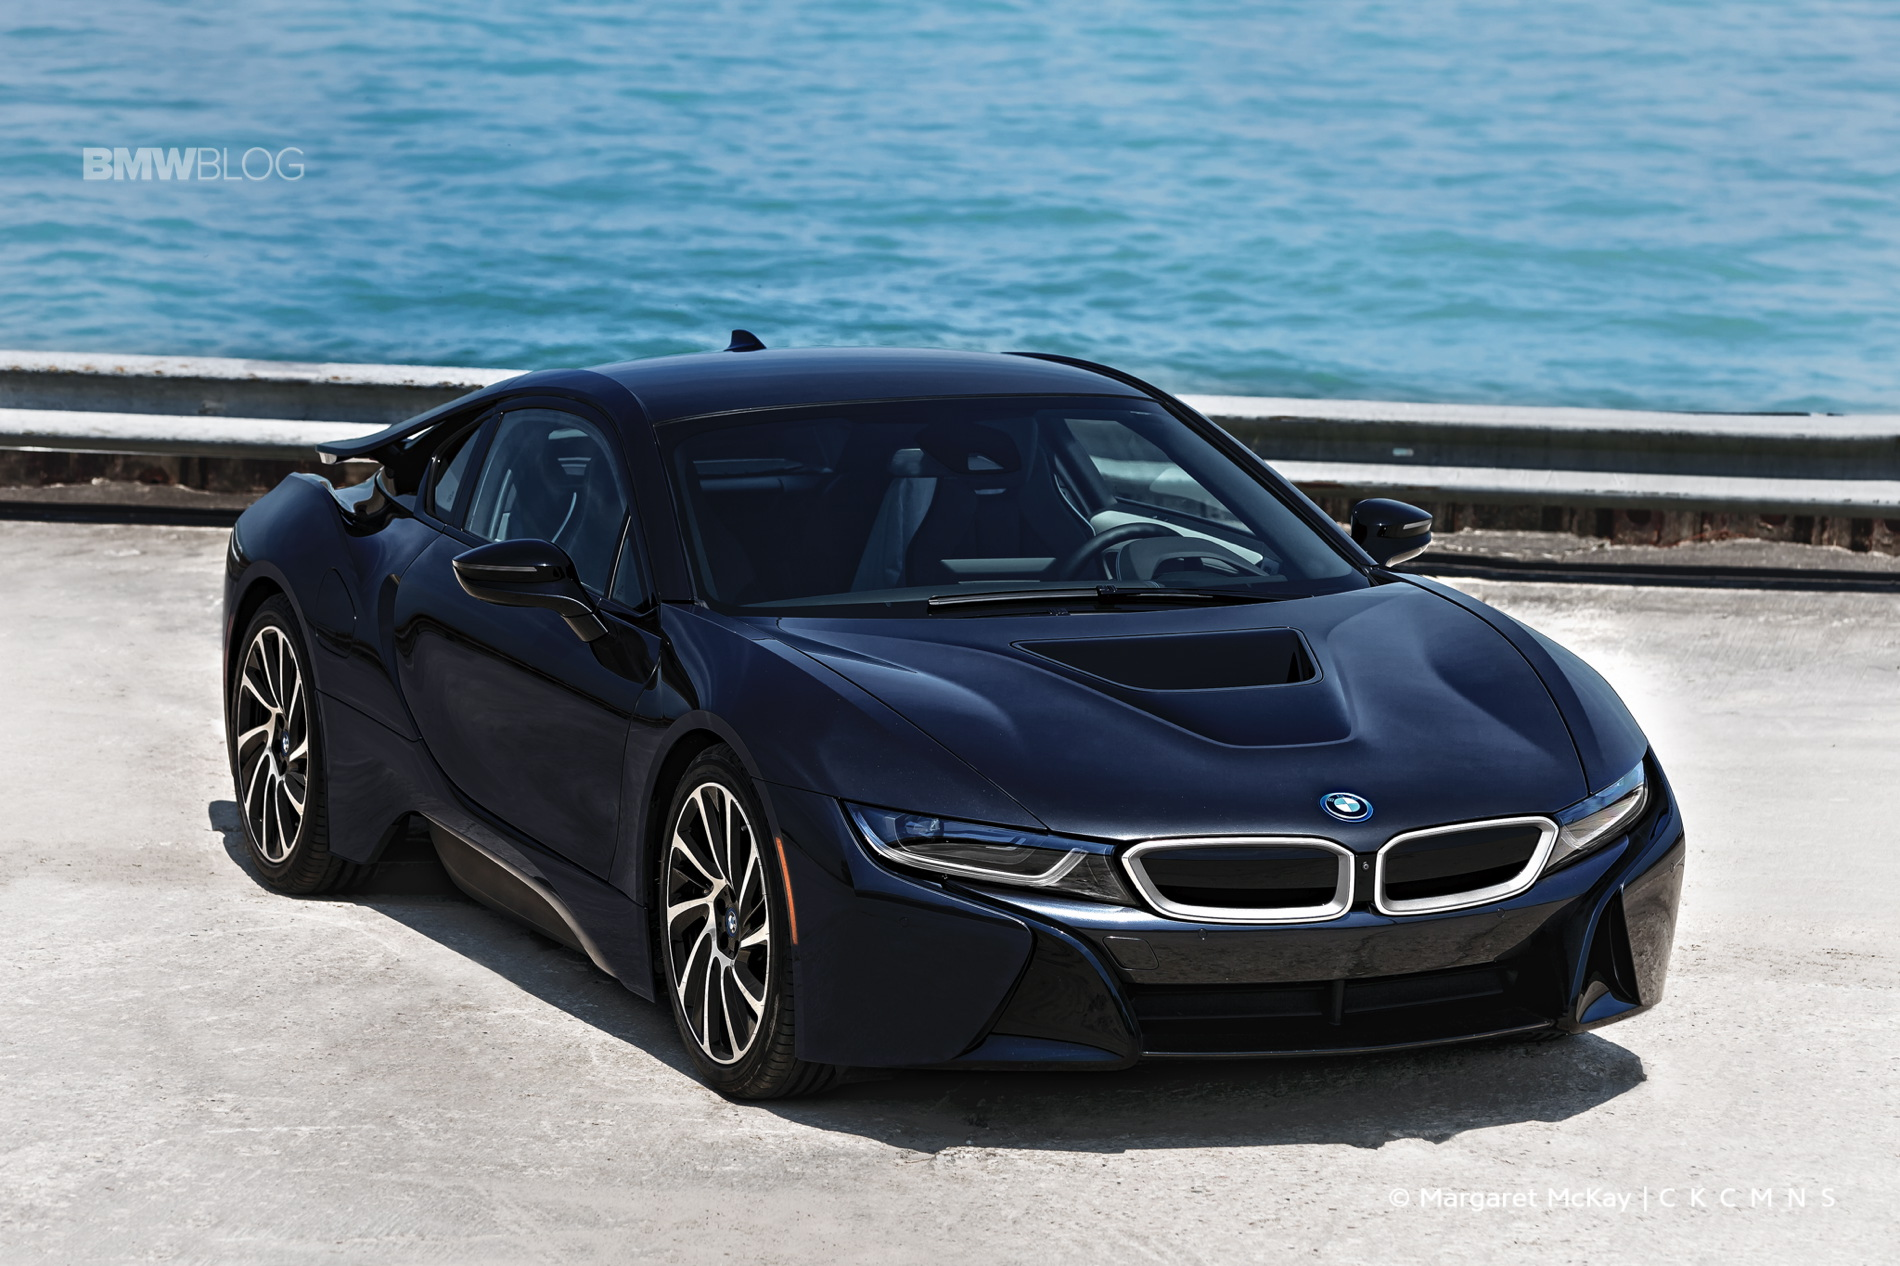 Bmw European Delivery >> 2015 BMW i8 Full Test Drive and Review - VIDEO